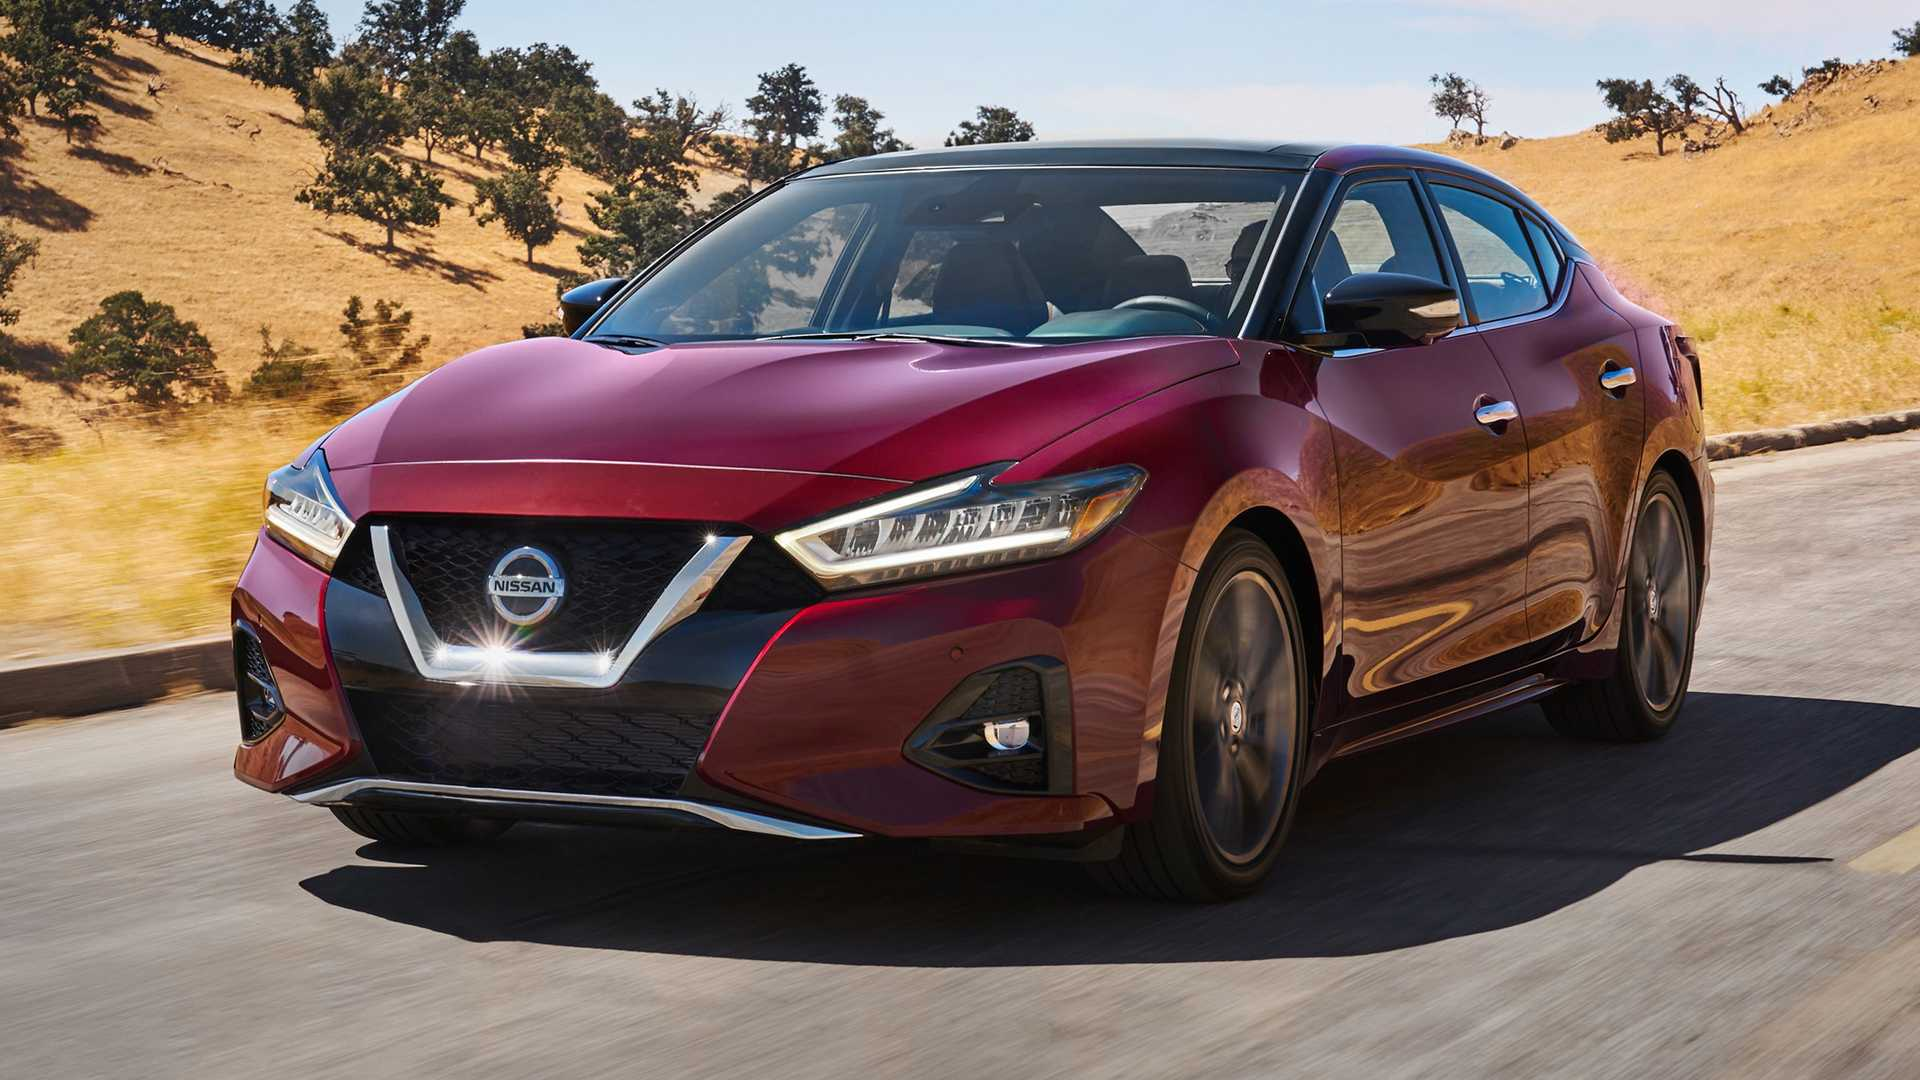 2021 nissan maxima base price sees massive increase from